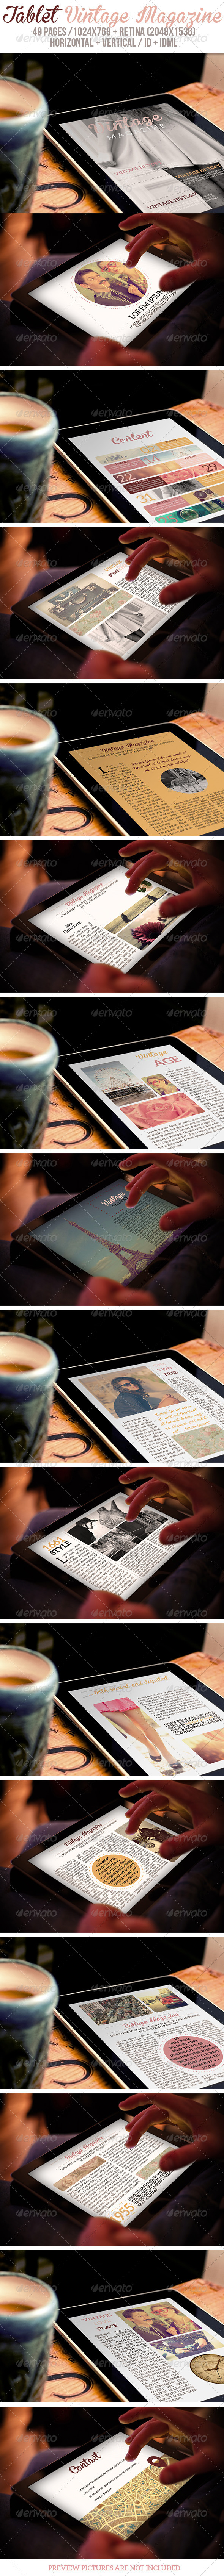 iPad & Tablet Vintage Magazine - Digital Magazines ePublishing